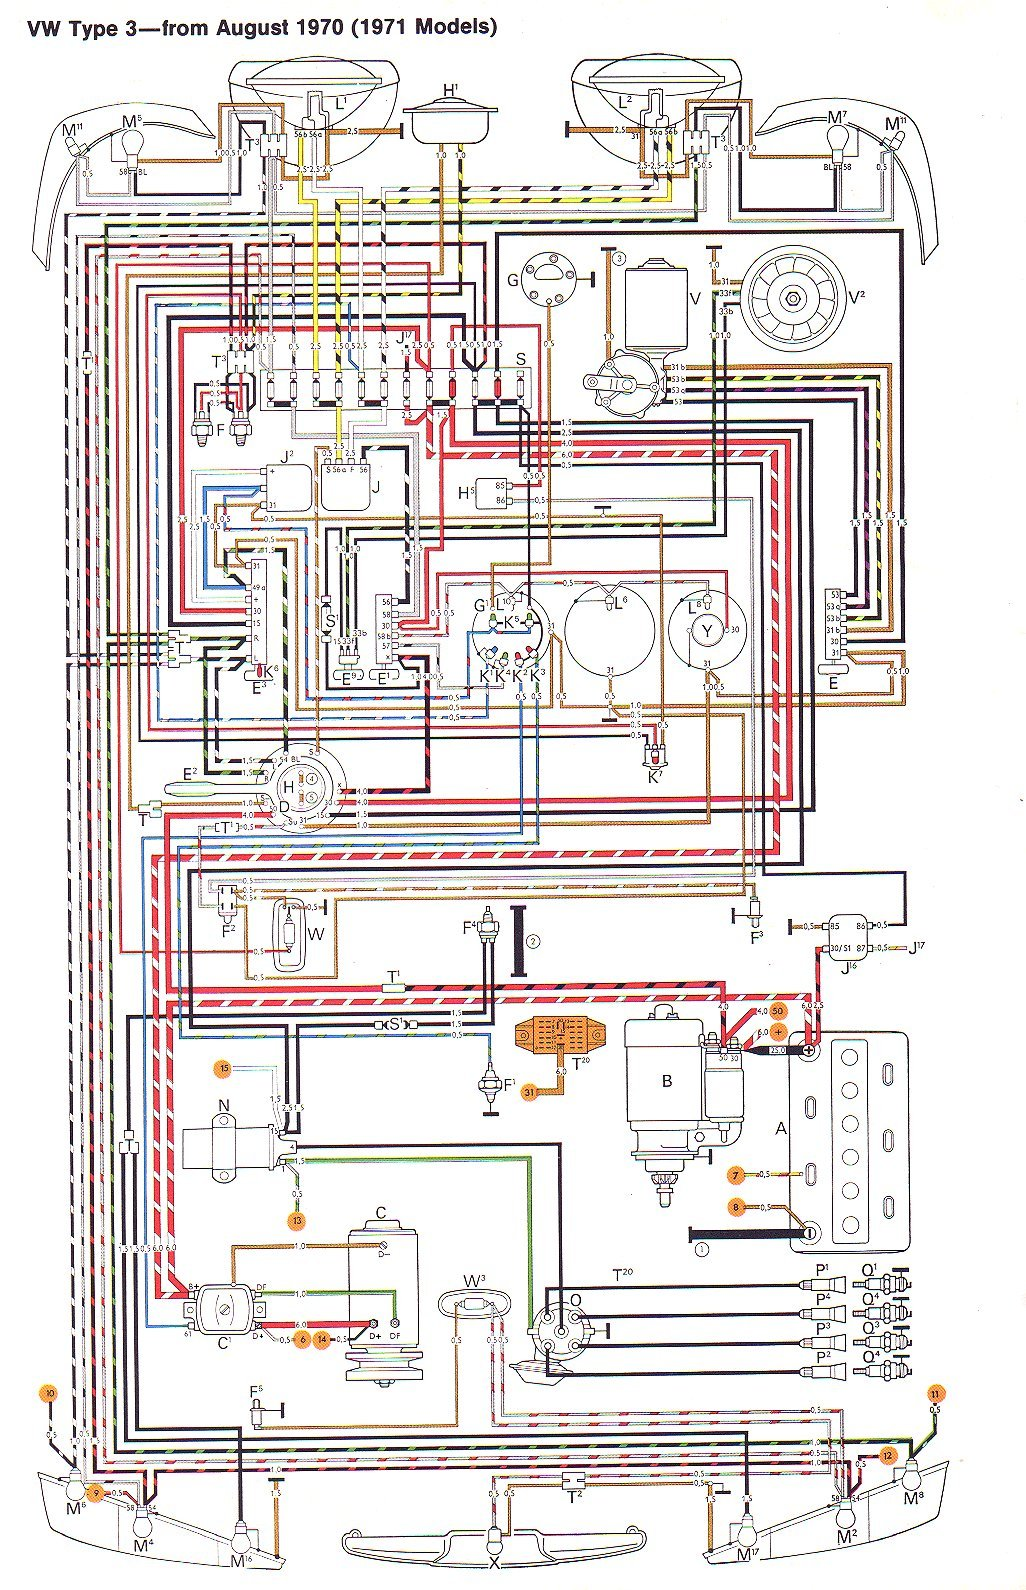 wiring diagram for vw beetle the wiring diagram volkswagen wiring diagrams volkswagen wiring diagrams for wiring diagram